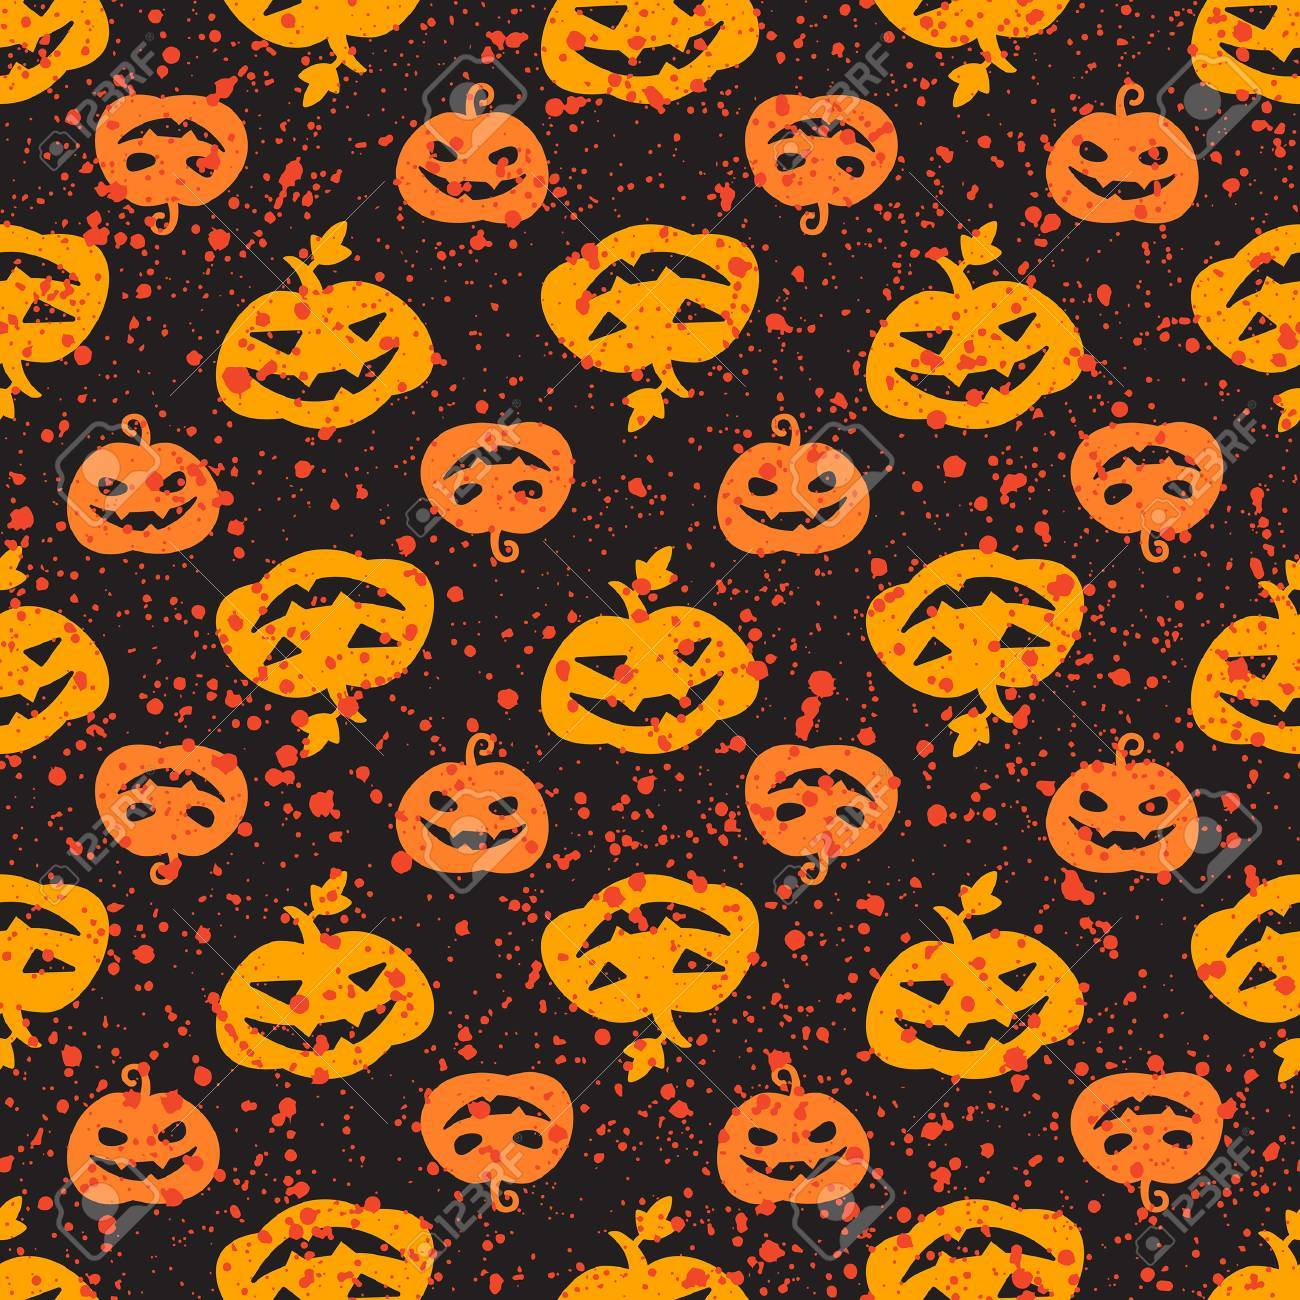 Halloween Pumpkin Seamless Vector Pattern Cute And Funny Jack Royalty Free Cliparts Vectors And Stock Illustration Image 62931589